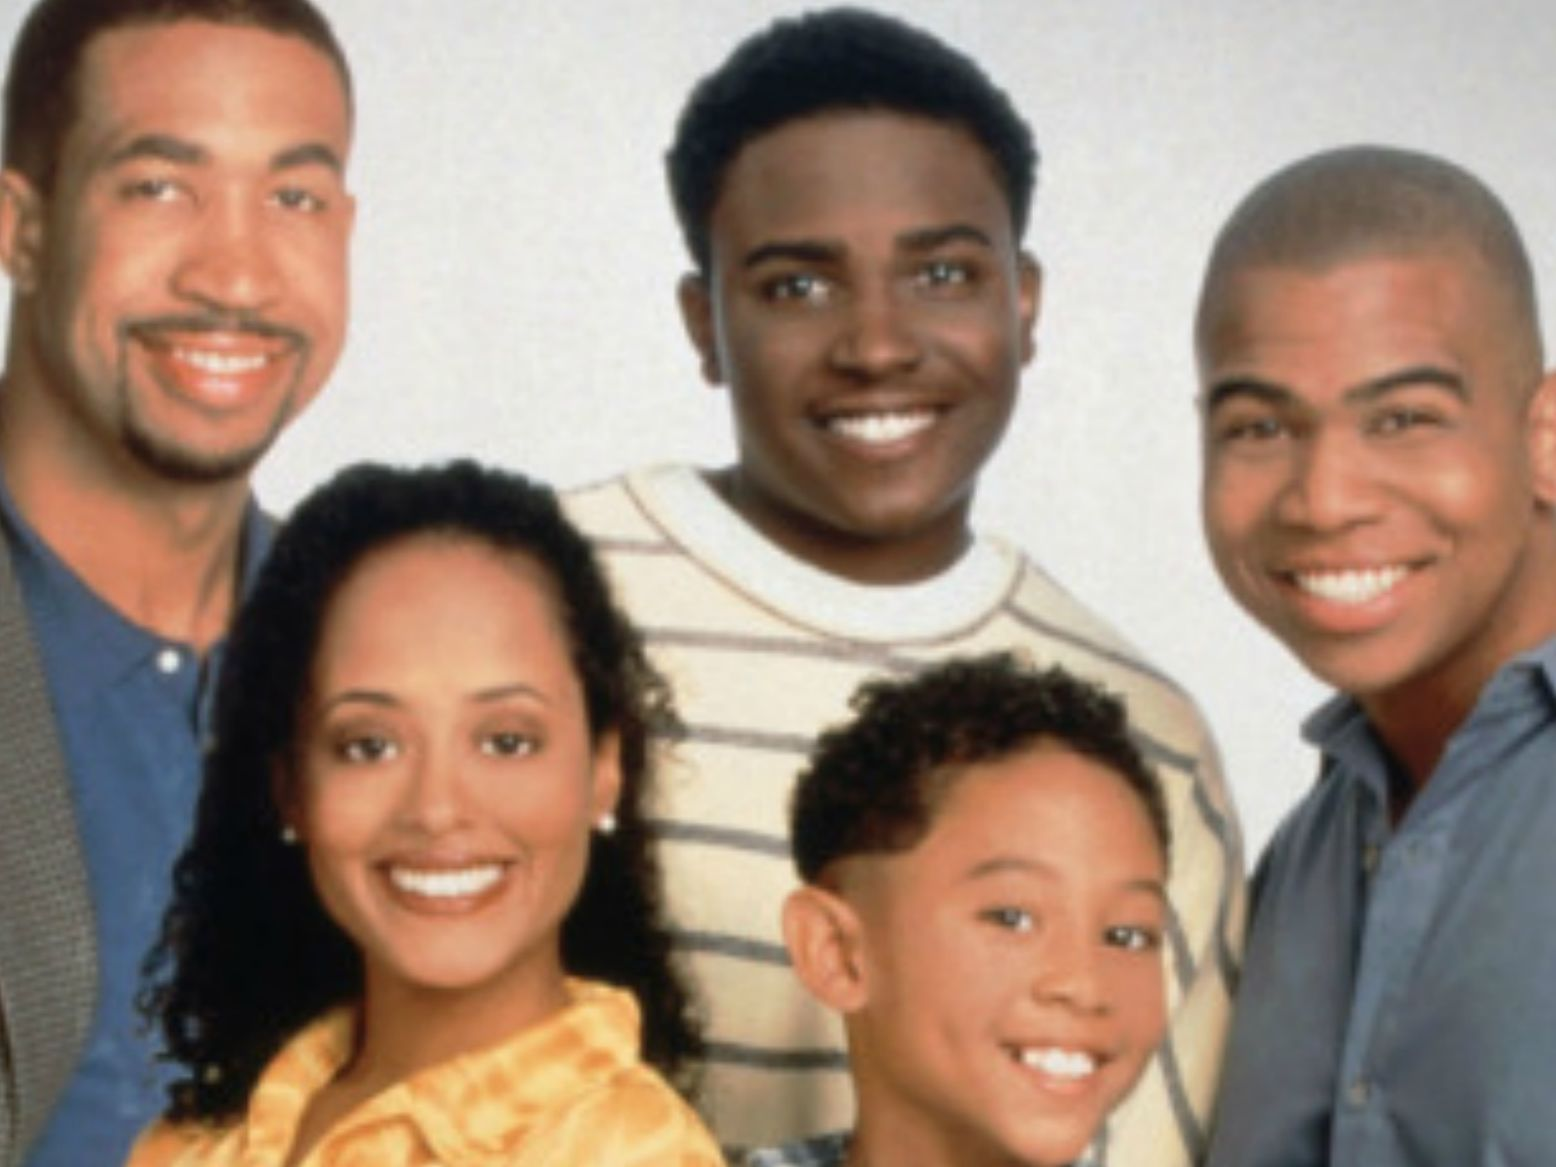 15 Disney Channel Shows From The 90s You Completely Forgot About